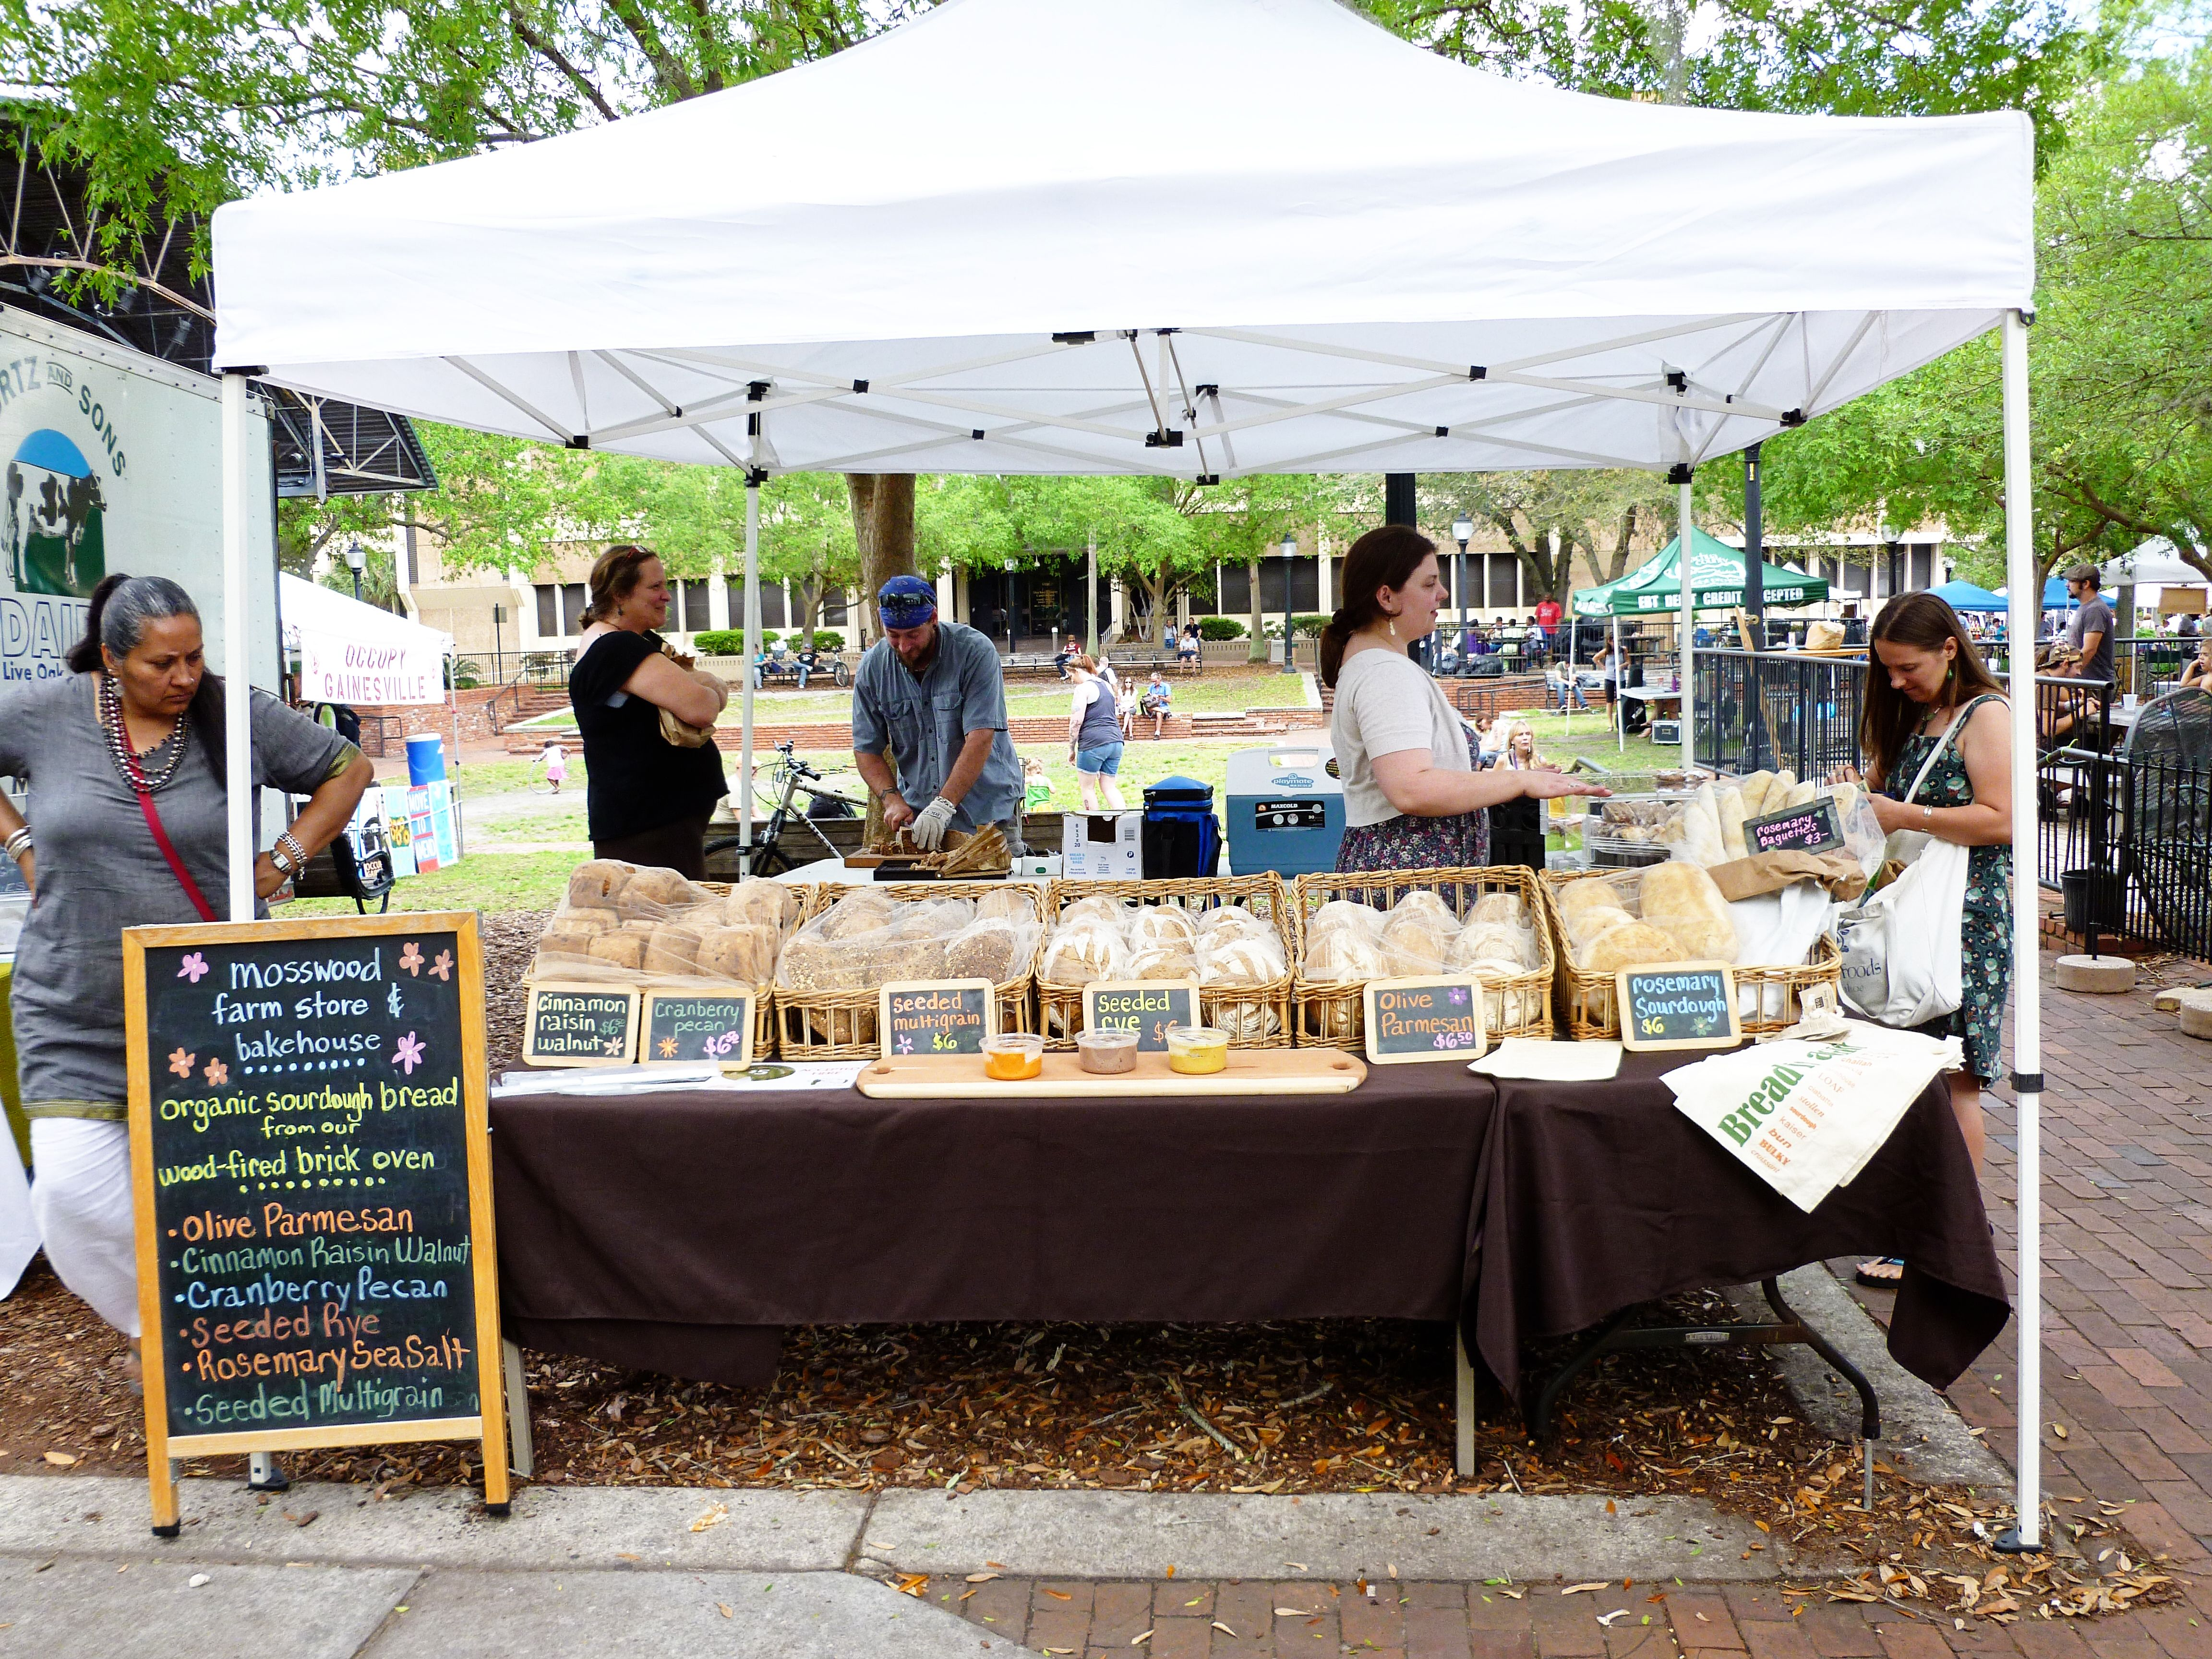 Farmers Market Stand Ideas Learn all about farmers markets farmersme.com/ farmers-markets & Farmers Market Stand Ideas Learn all about farmers markets ...